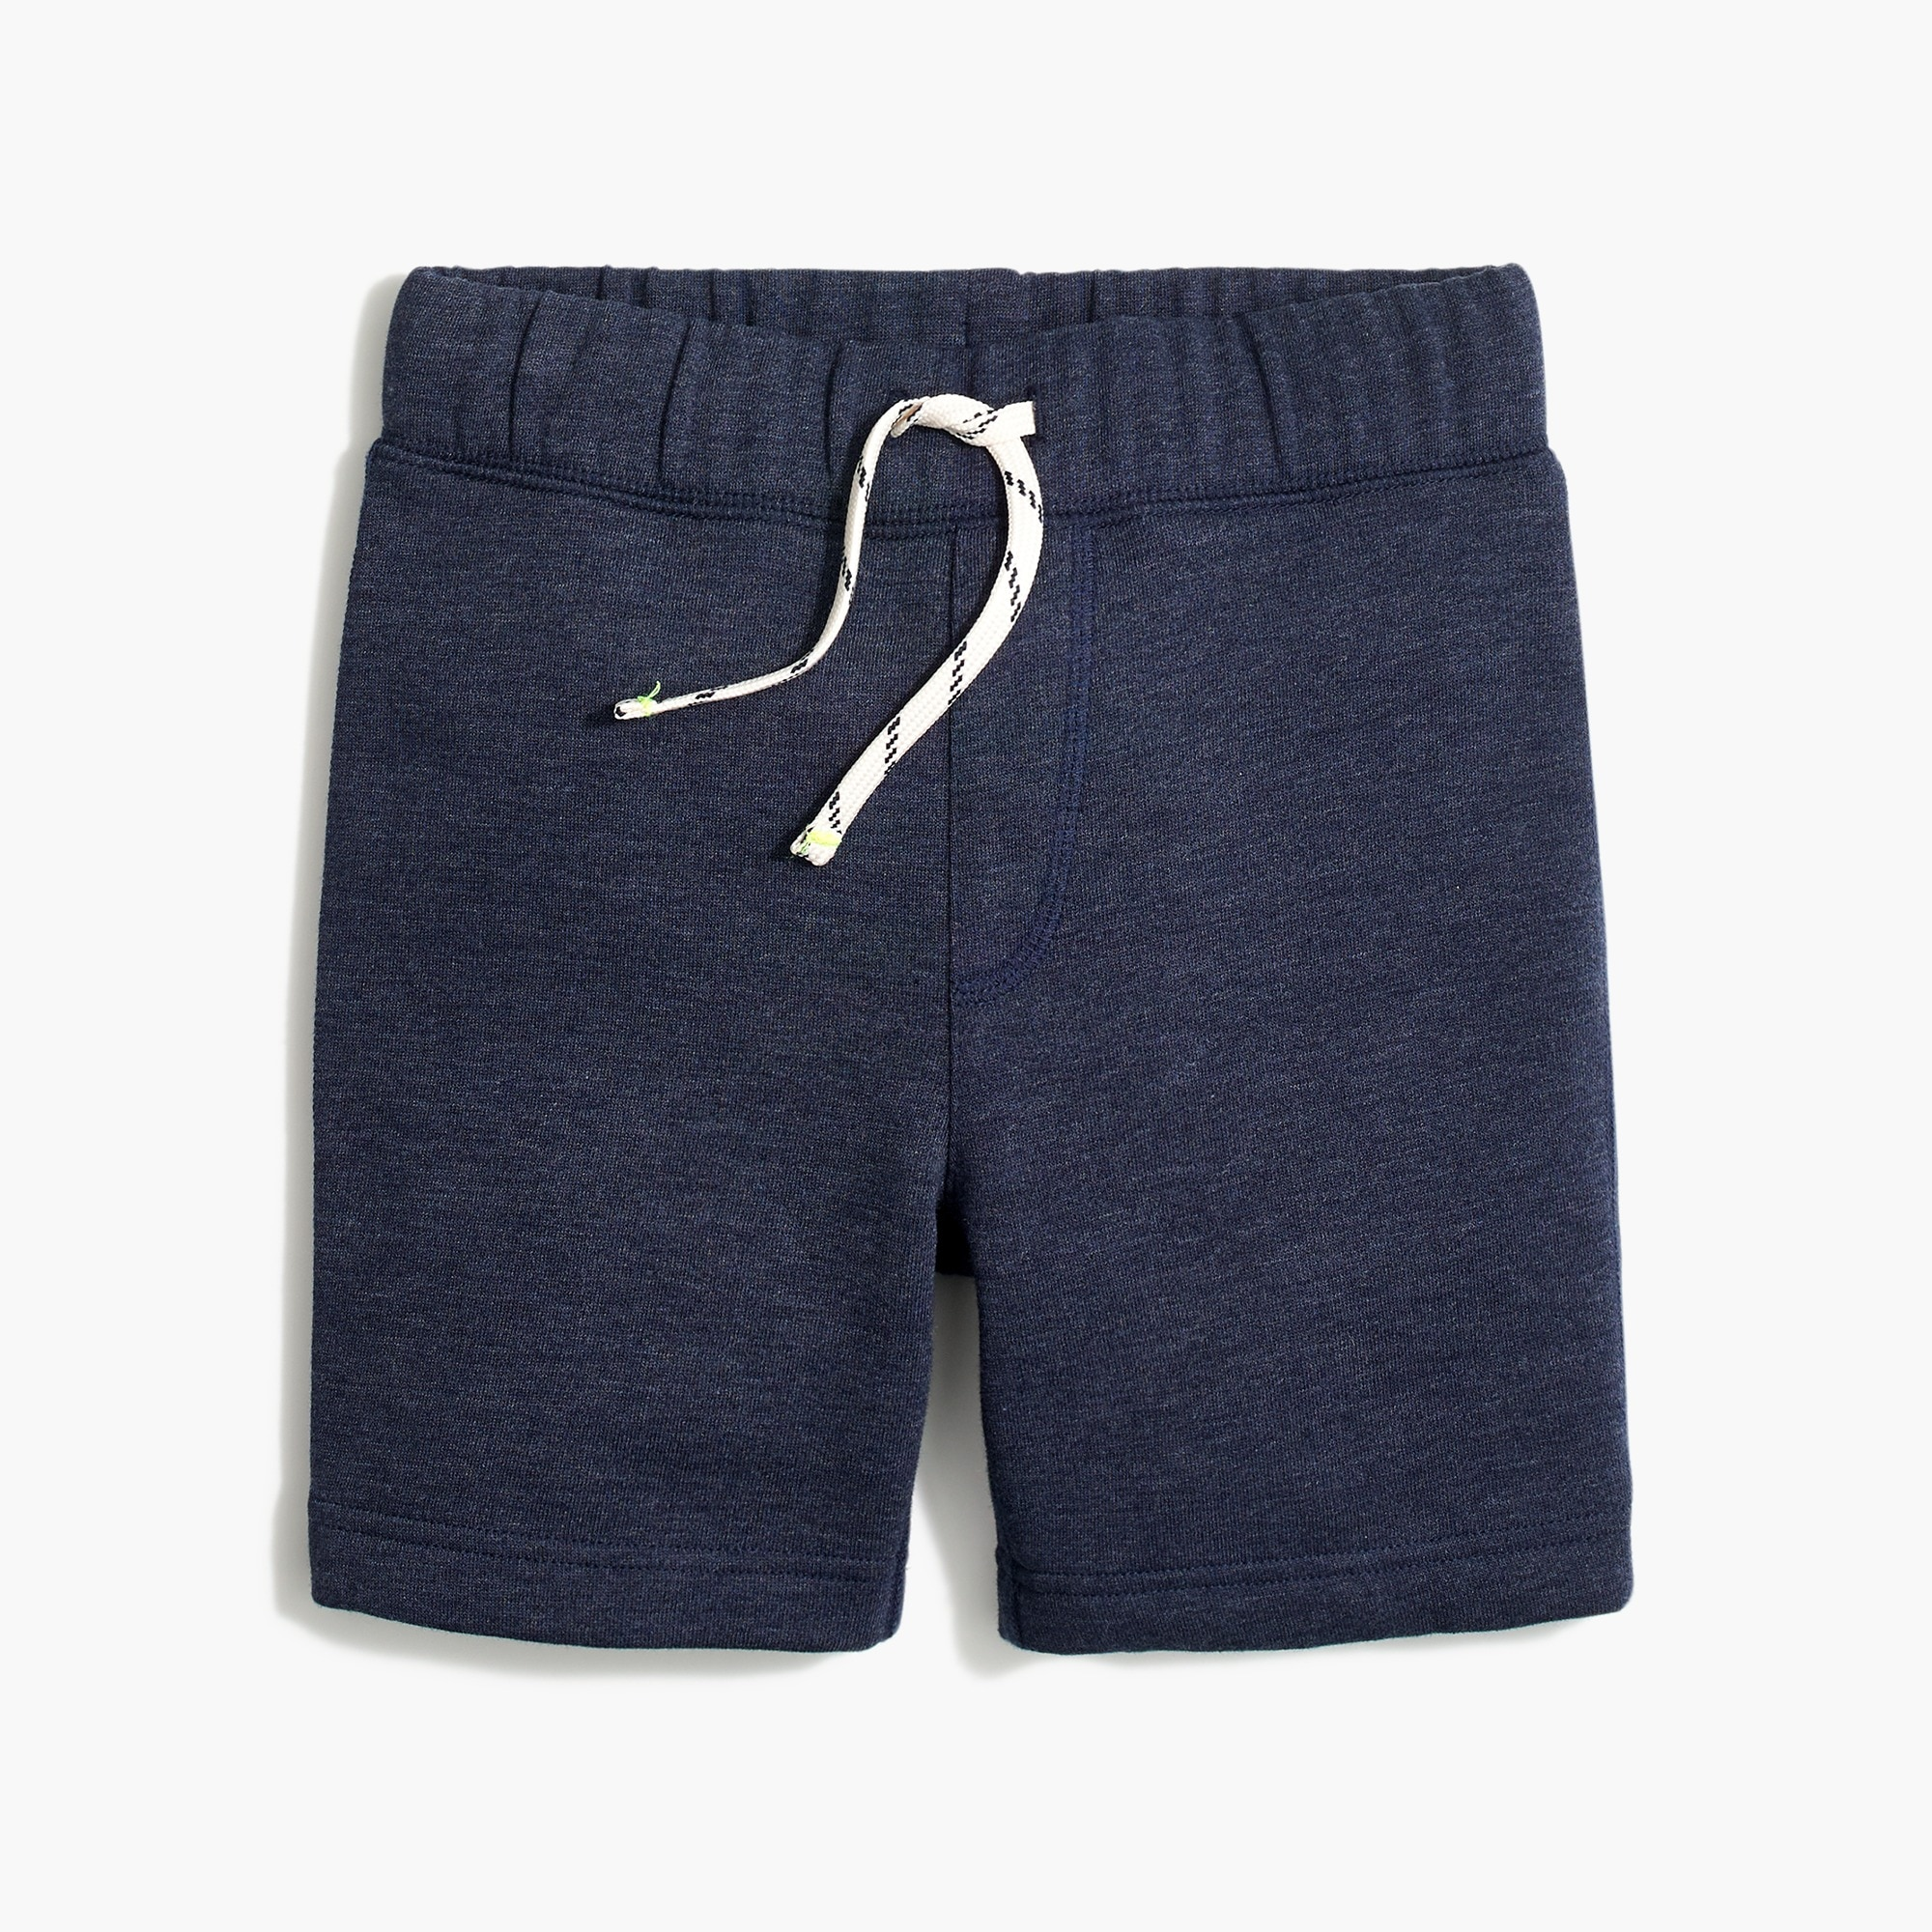 Boys' sweatshort factoryboys the camp shop c